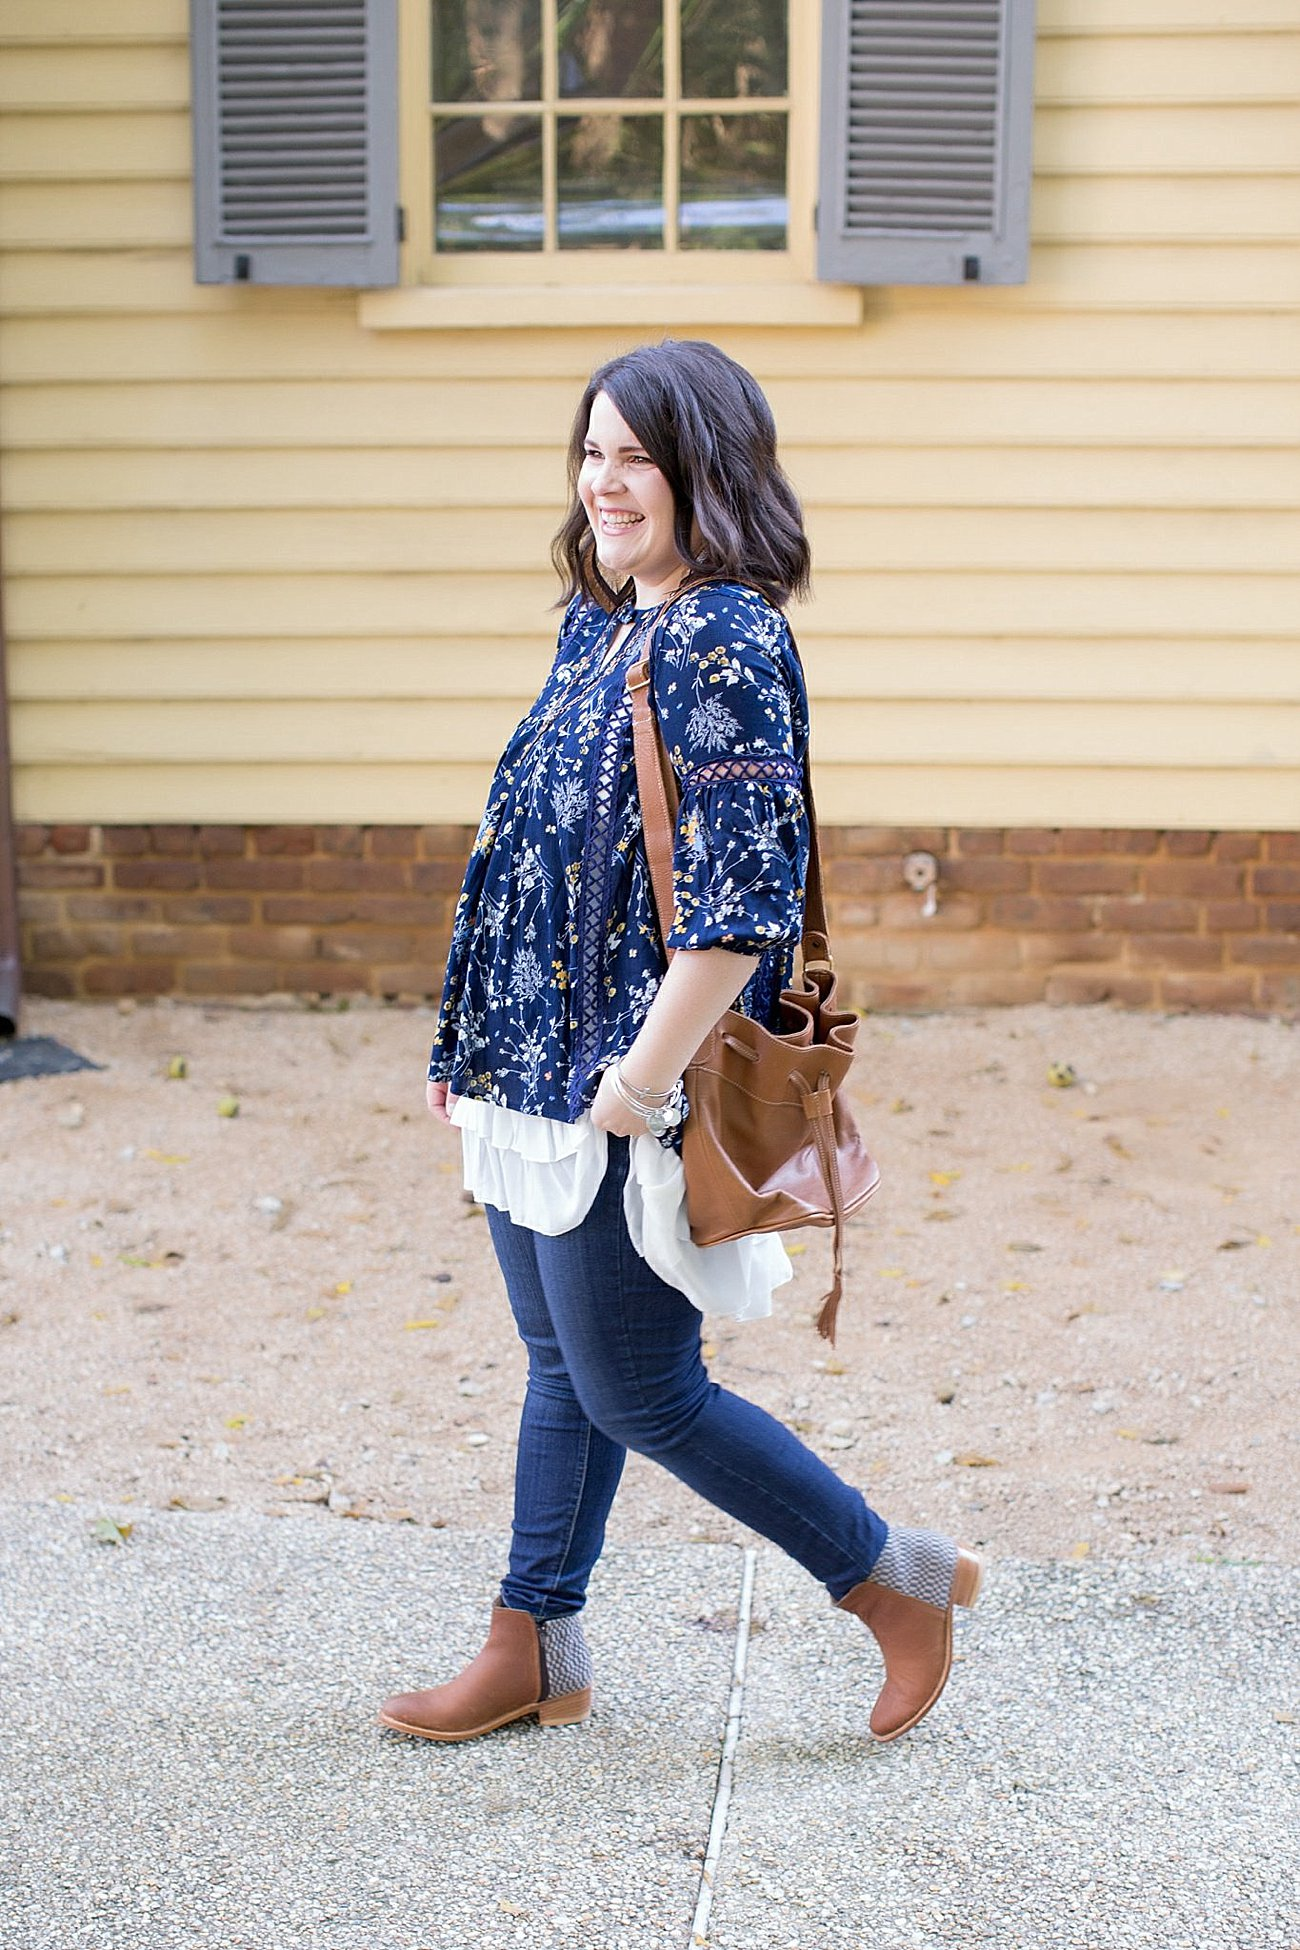 Grace & Lace peasant top and chiffon lace extender from The Flourish Market, Paige denim, Root Collective espe booties | Ethical Fashion, North Carolina Life and Style Blogger (11)